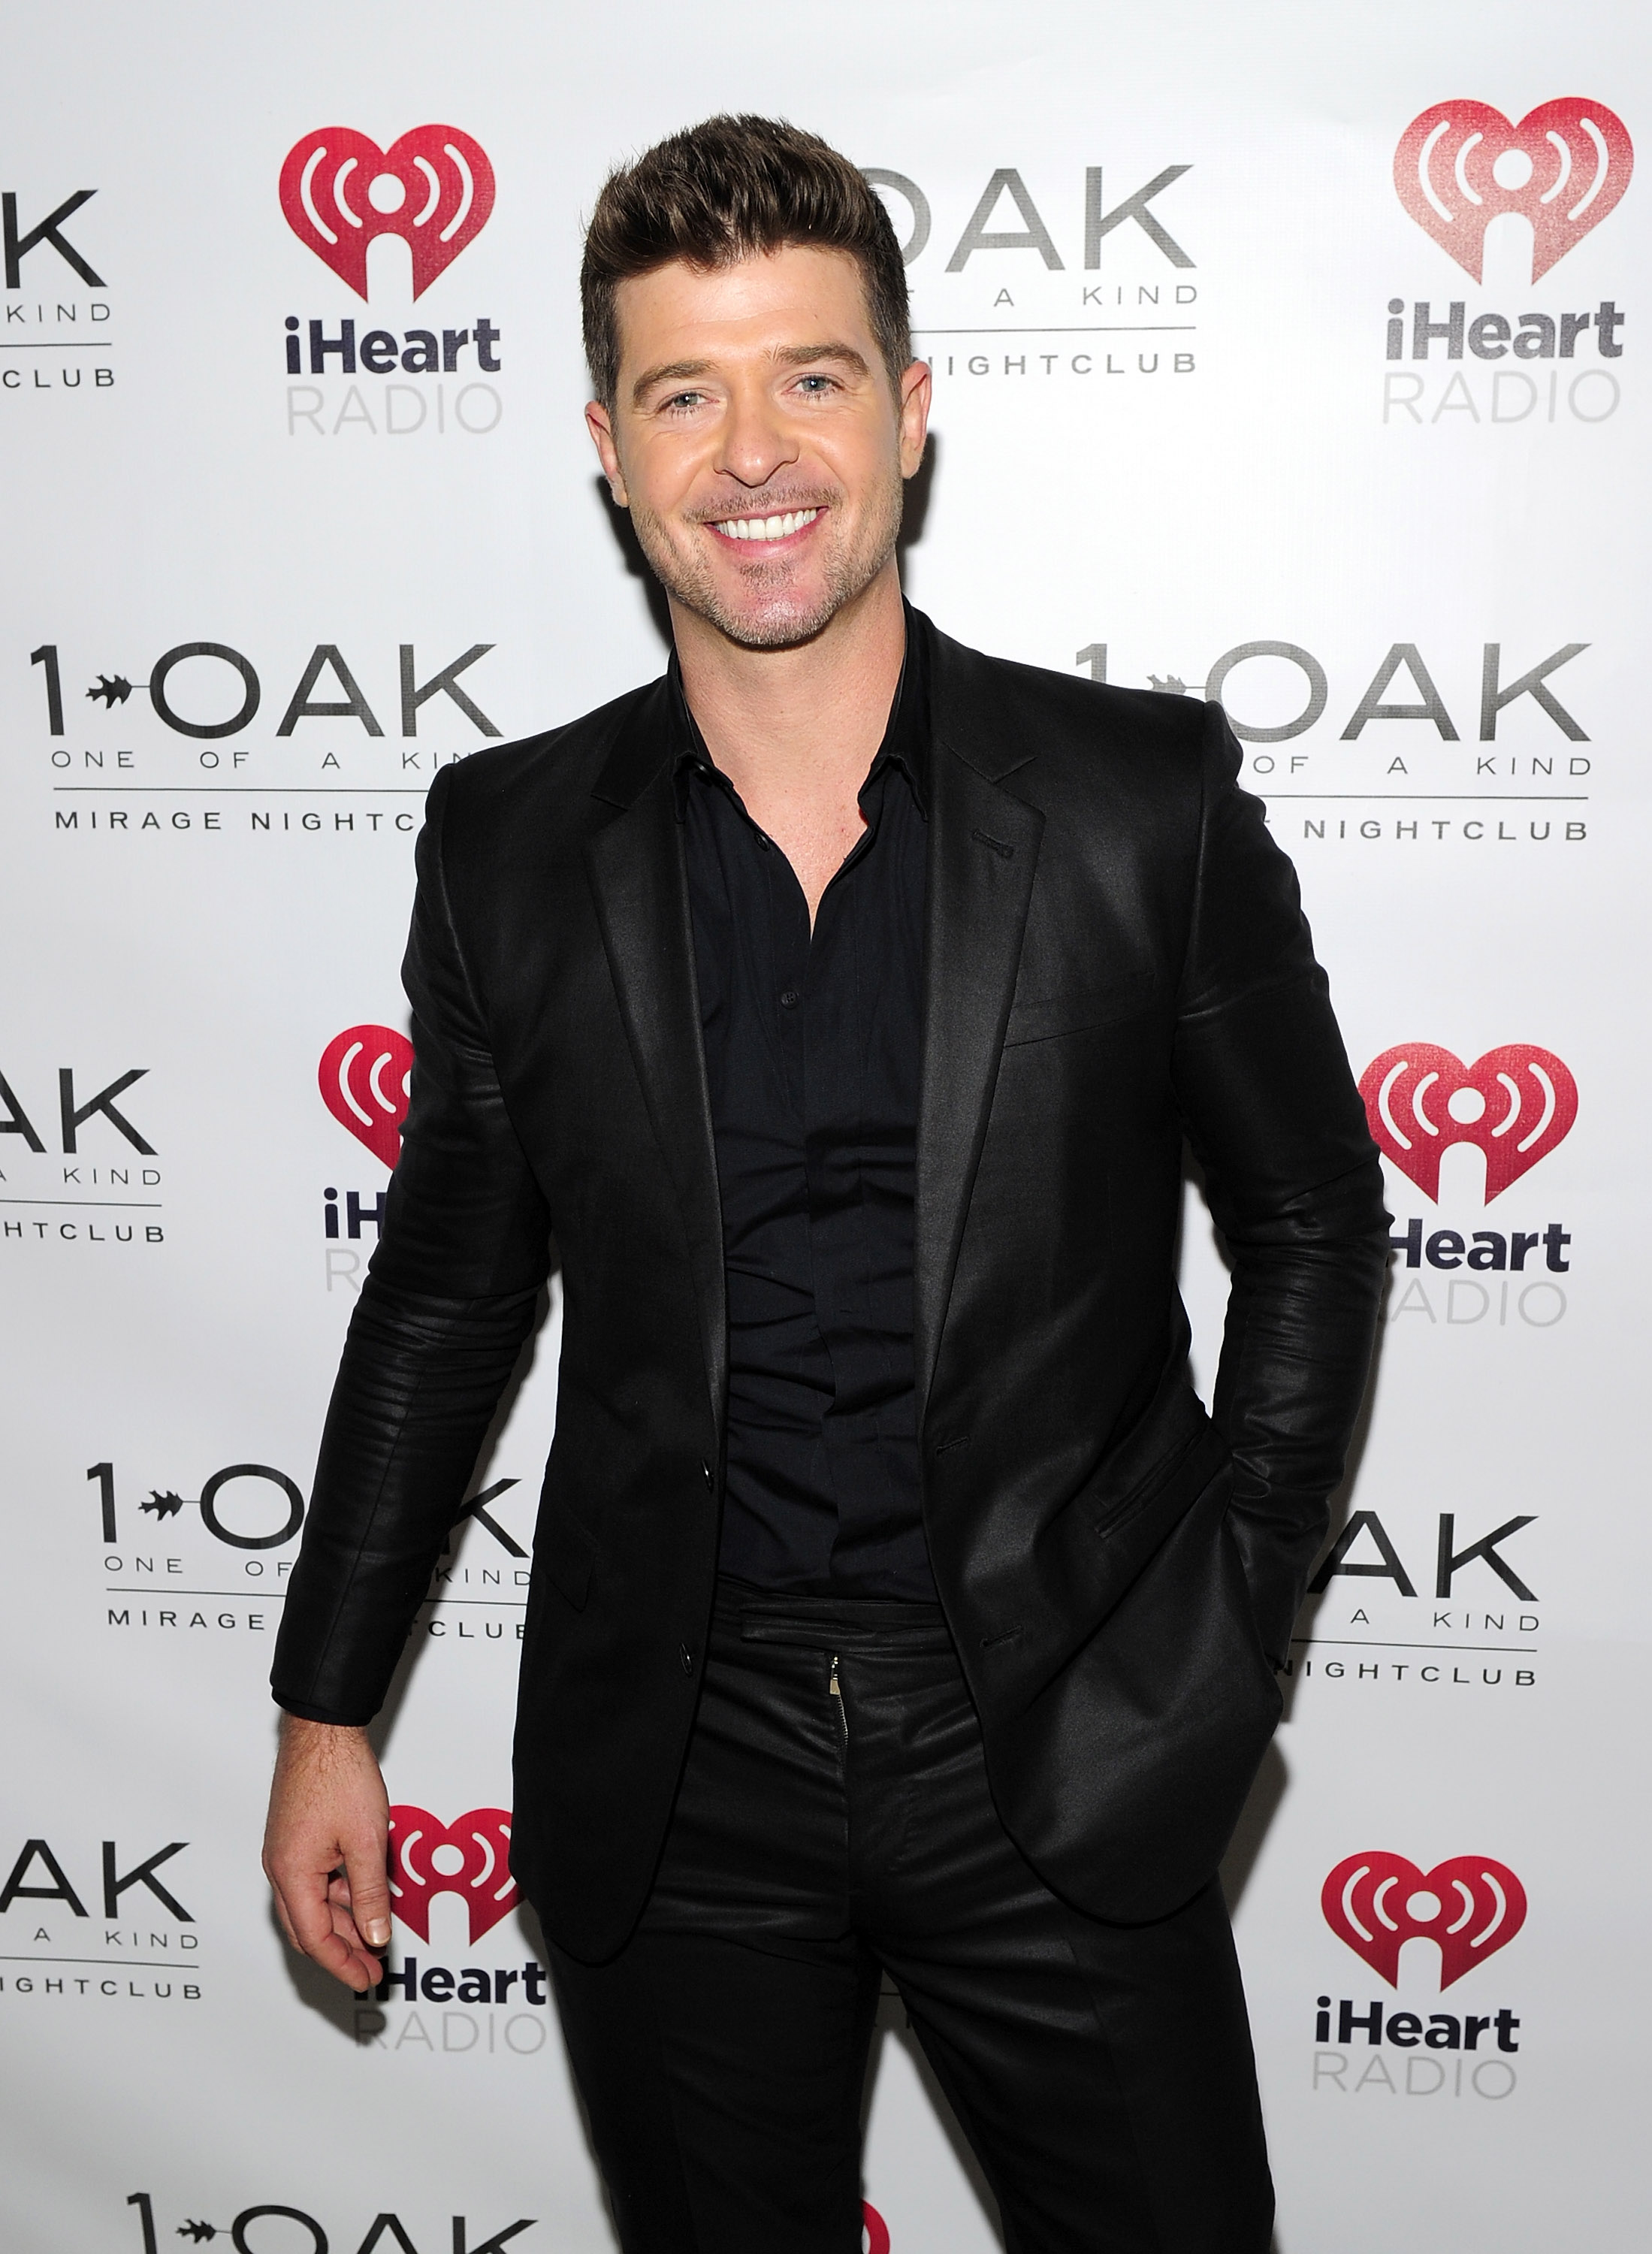 Robin Thicke at 1 OAK Nightclub At The Mirage In Las Vegas after The iHeartRadio Music Festival Sept. 20. (WireImage/Steven Lawton)